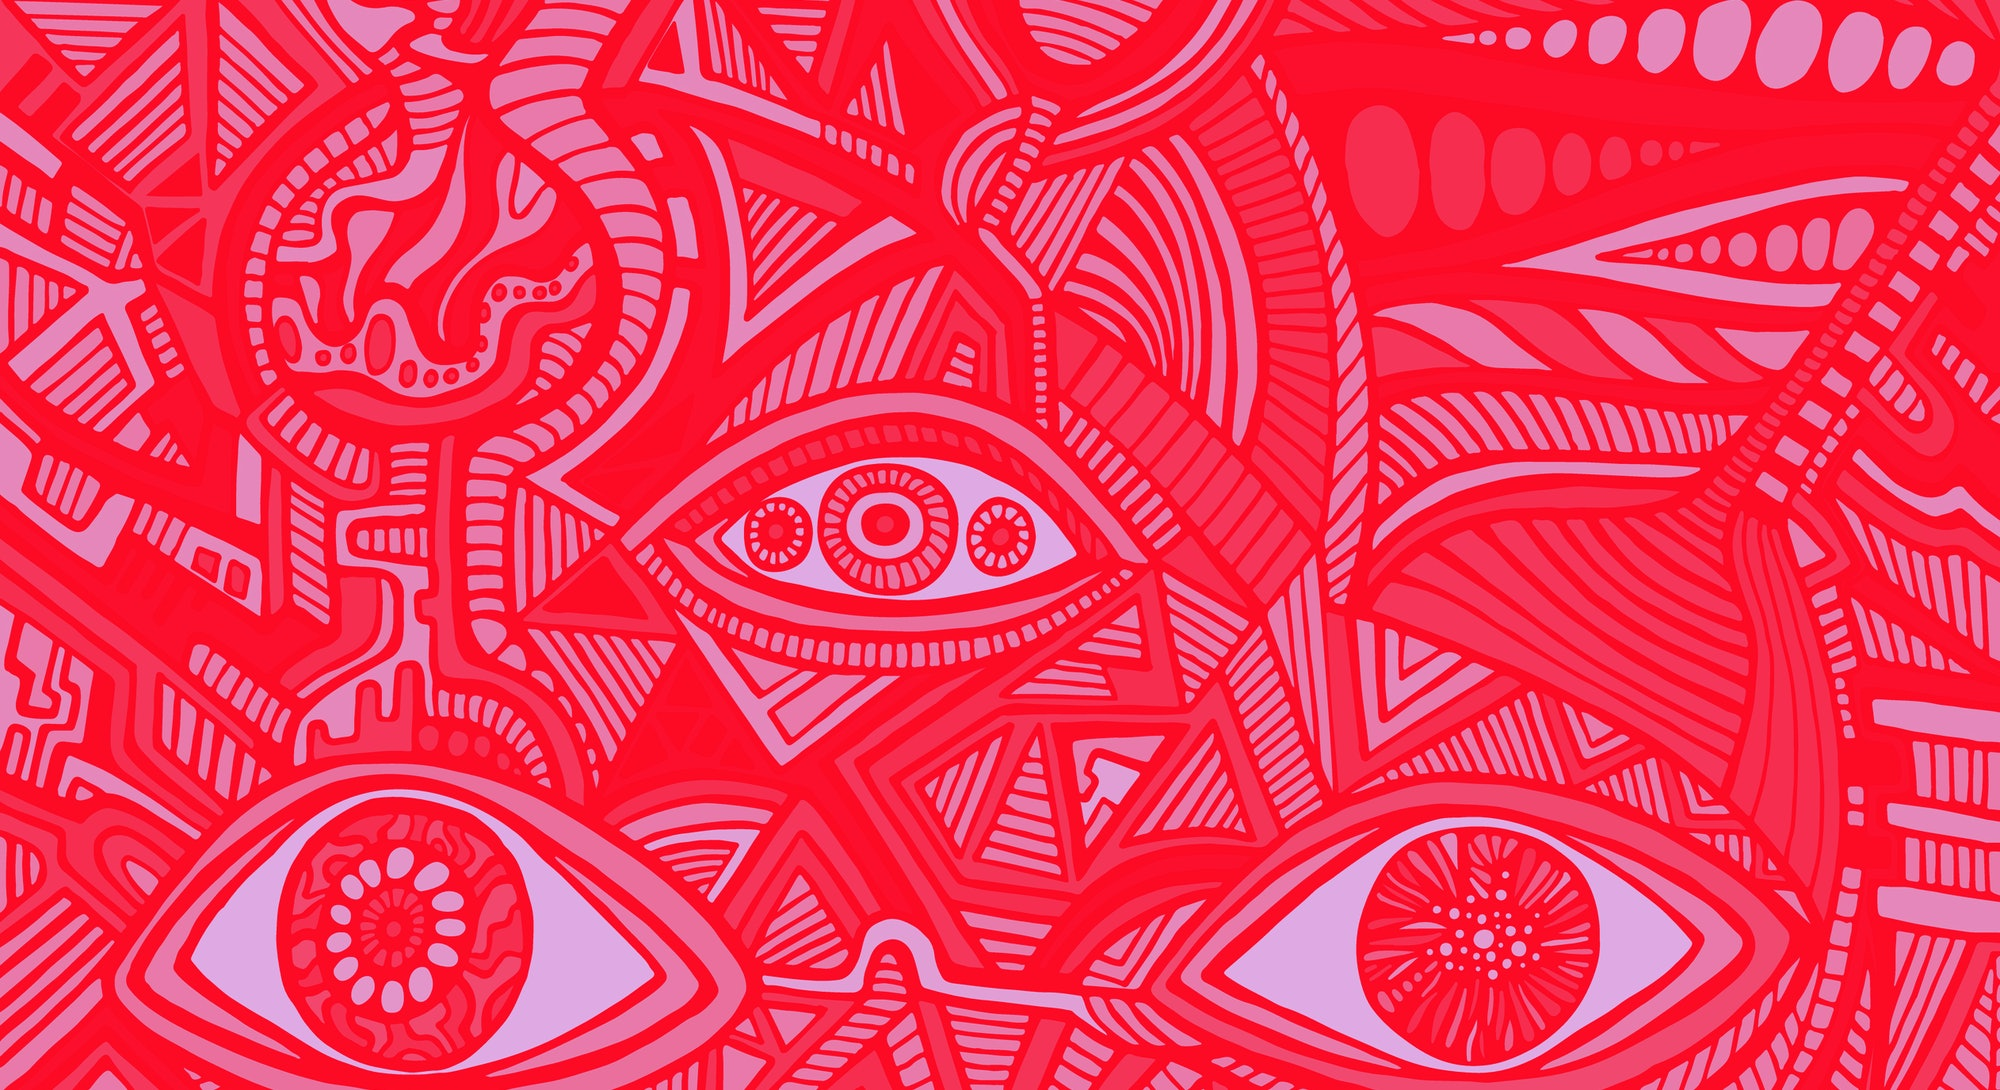 Cartoon funny psychedelic shamanic eyes of crazy patterns. Colorful art with decorative eyes. Surreal doodle stylish card. Abstract pattern with maze ornaments. Vector hand drawn illustration.